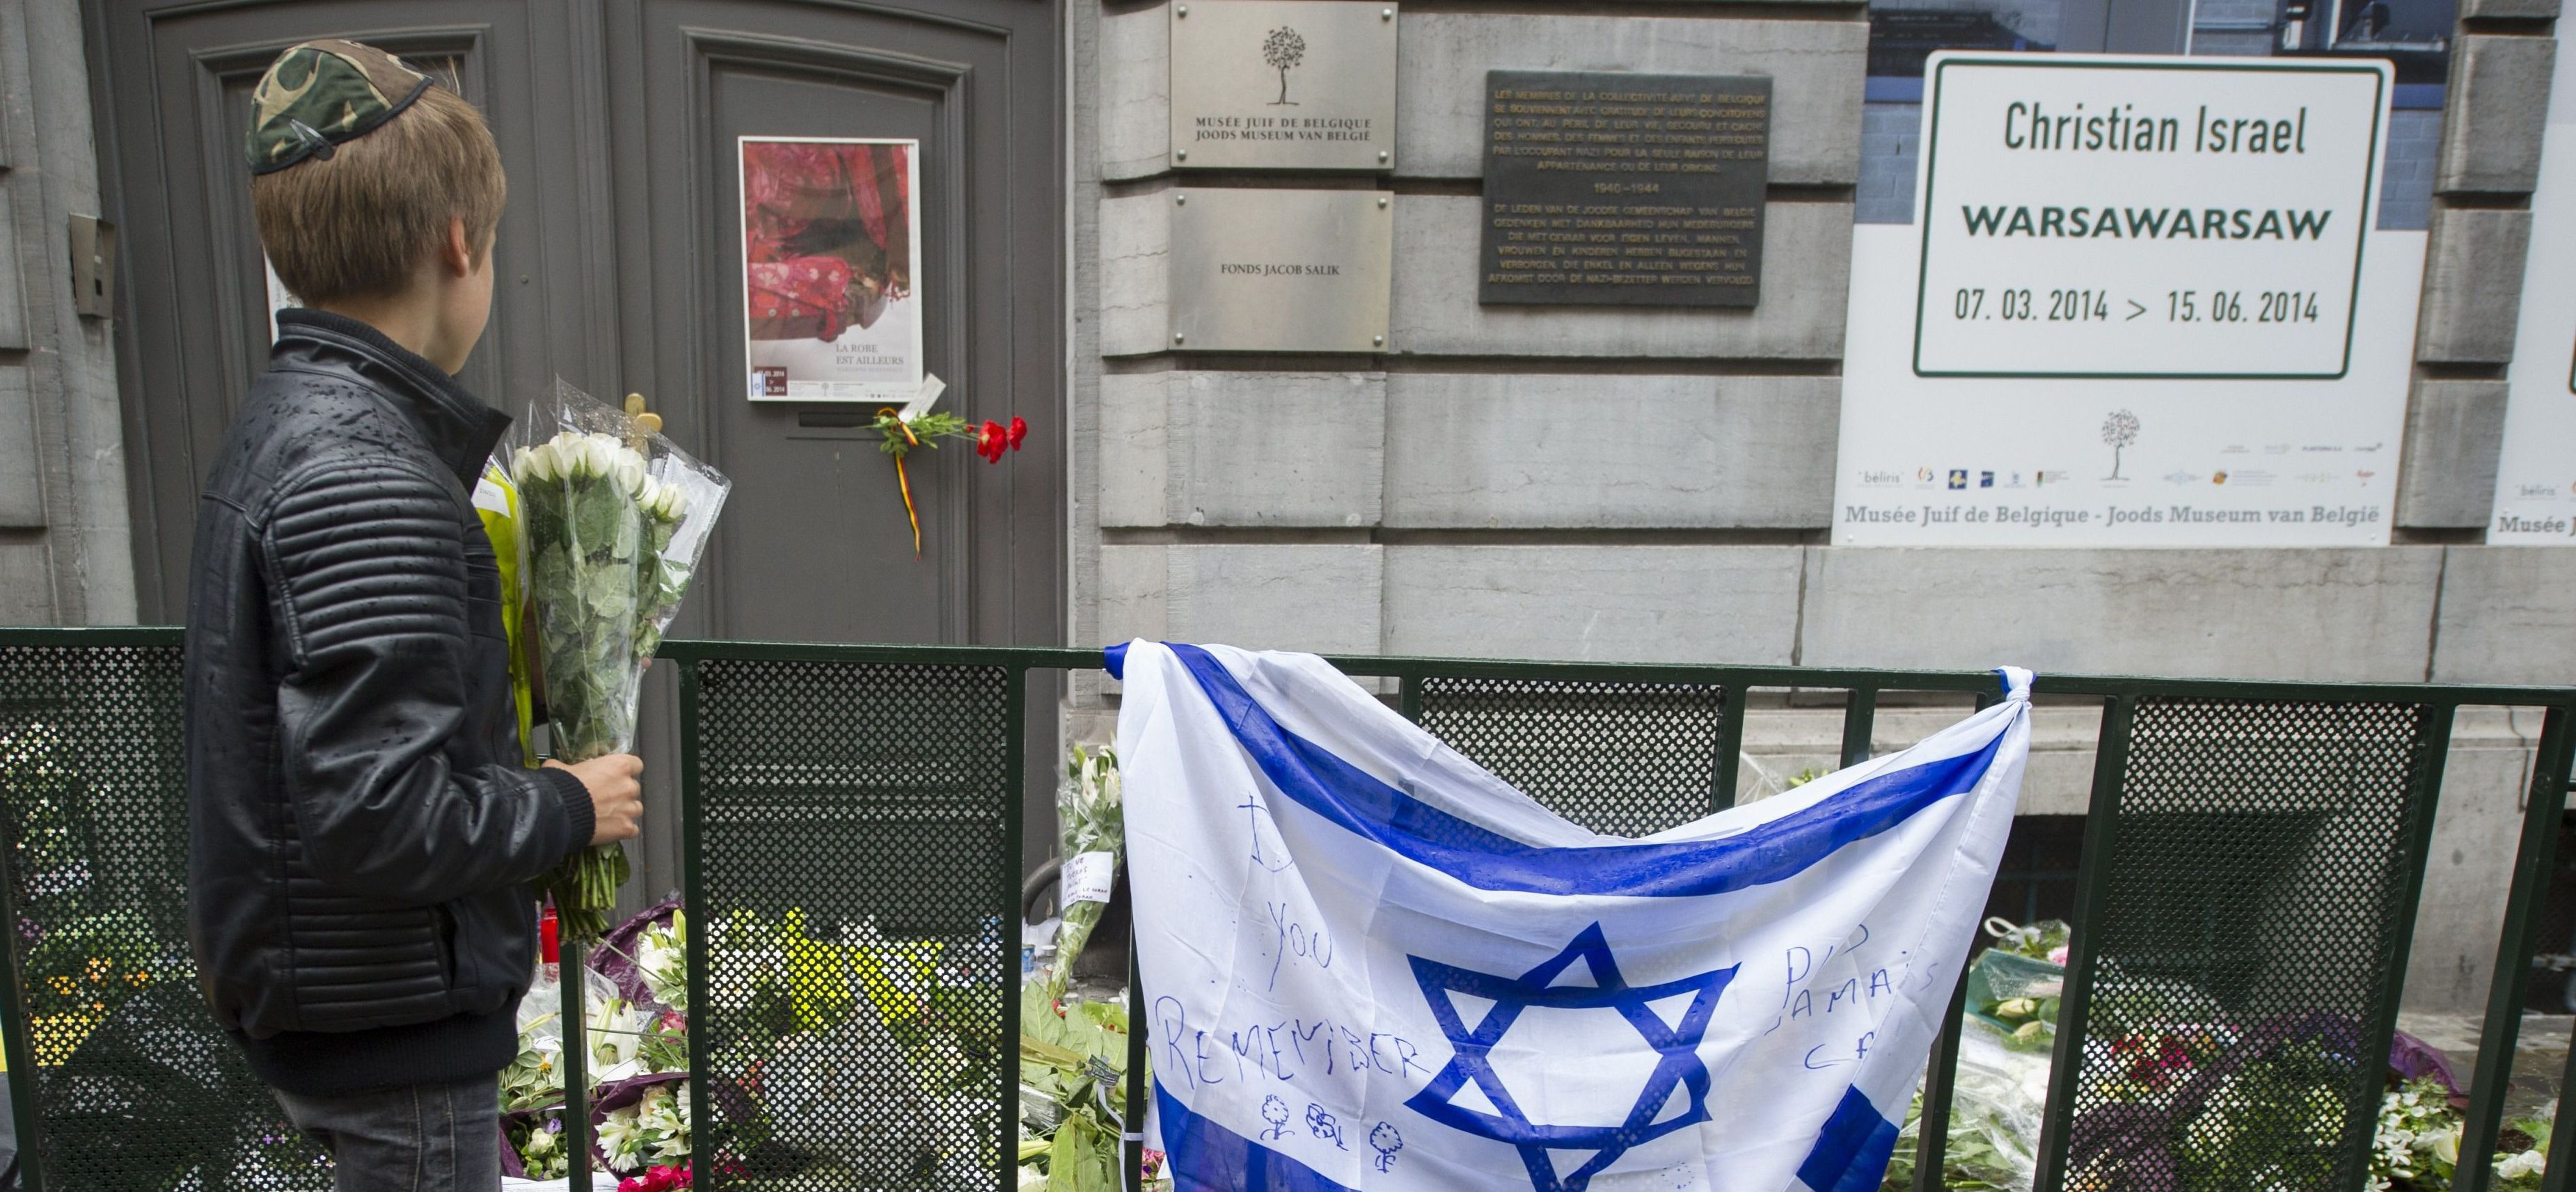 A Jewish boy stands with flowers in front of an Israeli flag and flowers laid in front of the Jewish Museum in Brussels on May 26, 2014, two days after a fatal shooting attack.